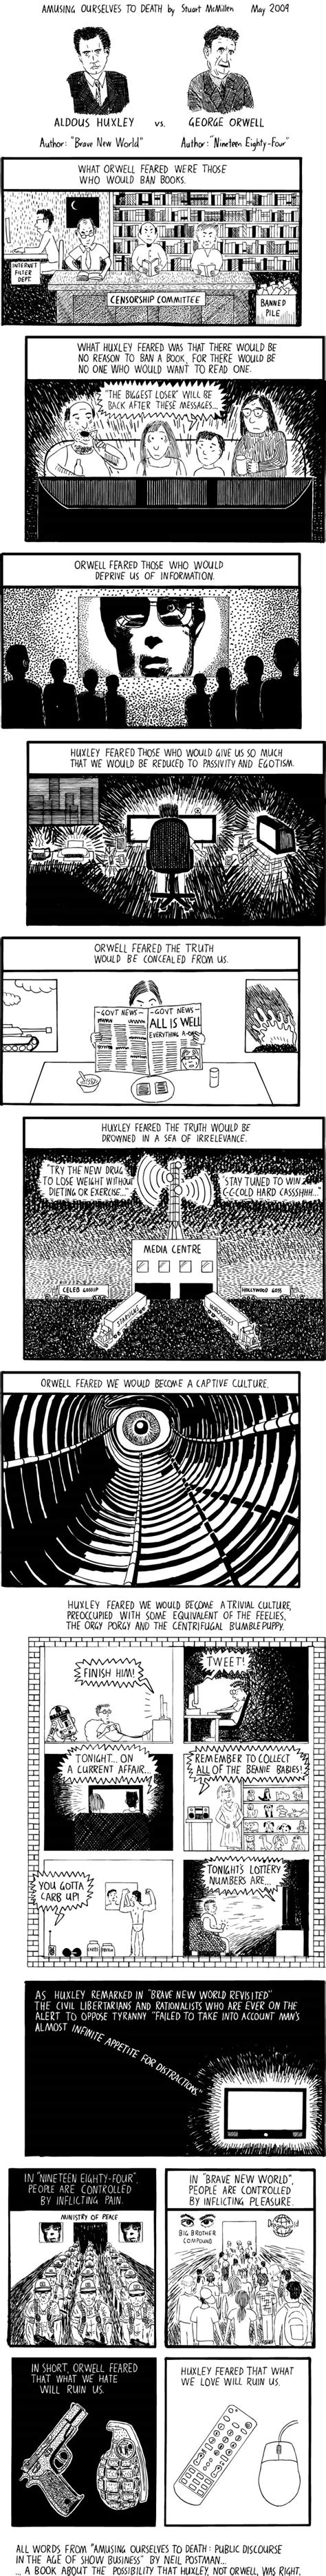 themes of brave new world and 1984 huxley vs orwell the webcomic biblioklept